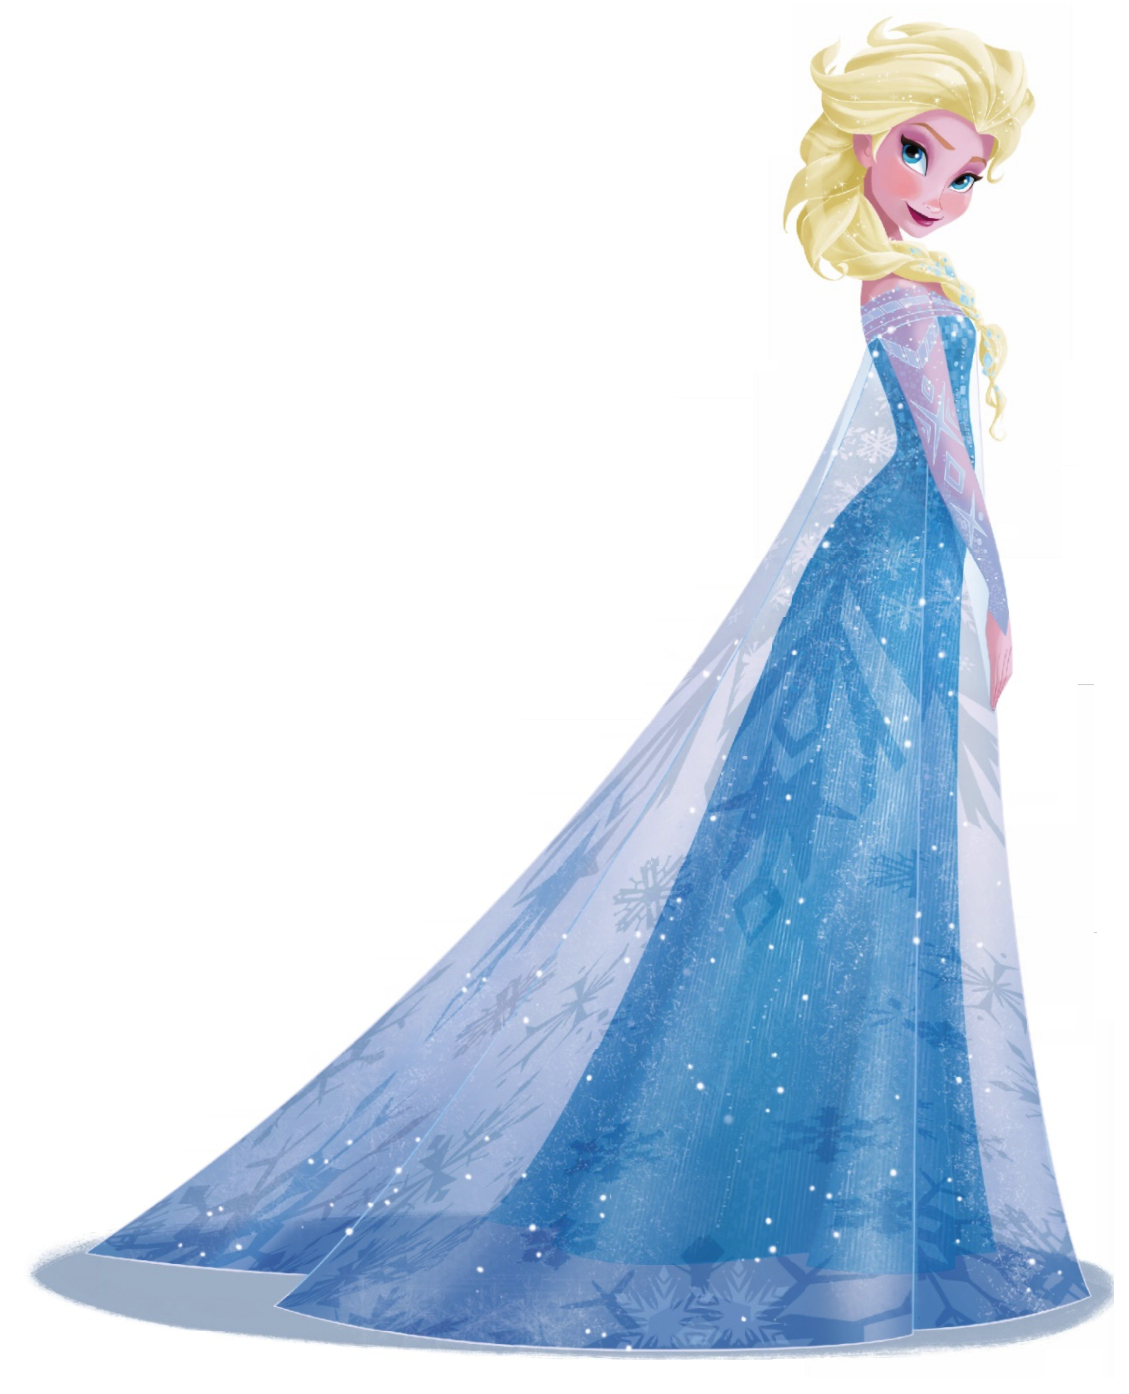 Elsa 2d disney princess photo 35586157 fanpop - Princesse frozen ...